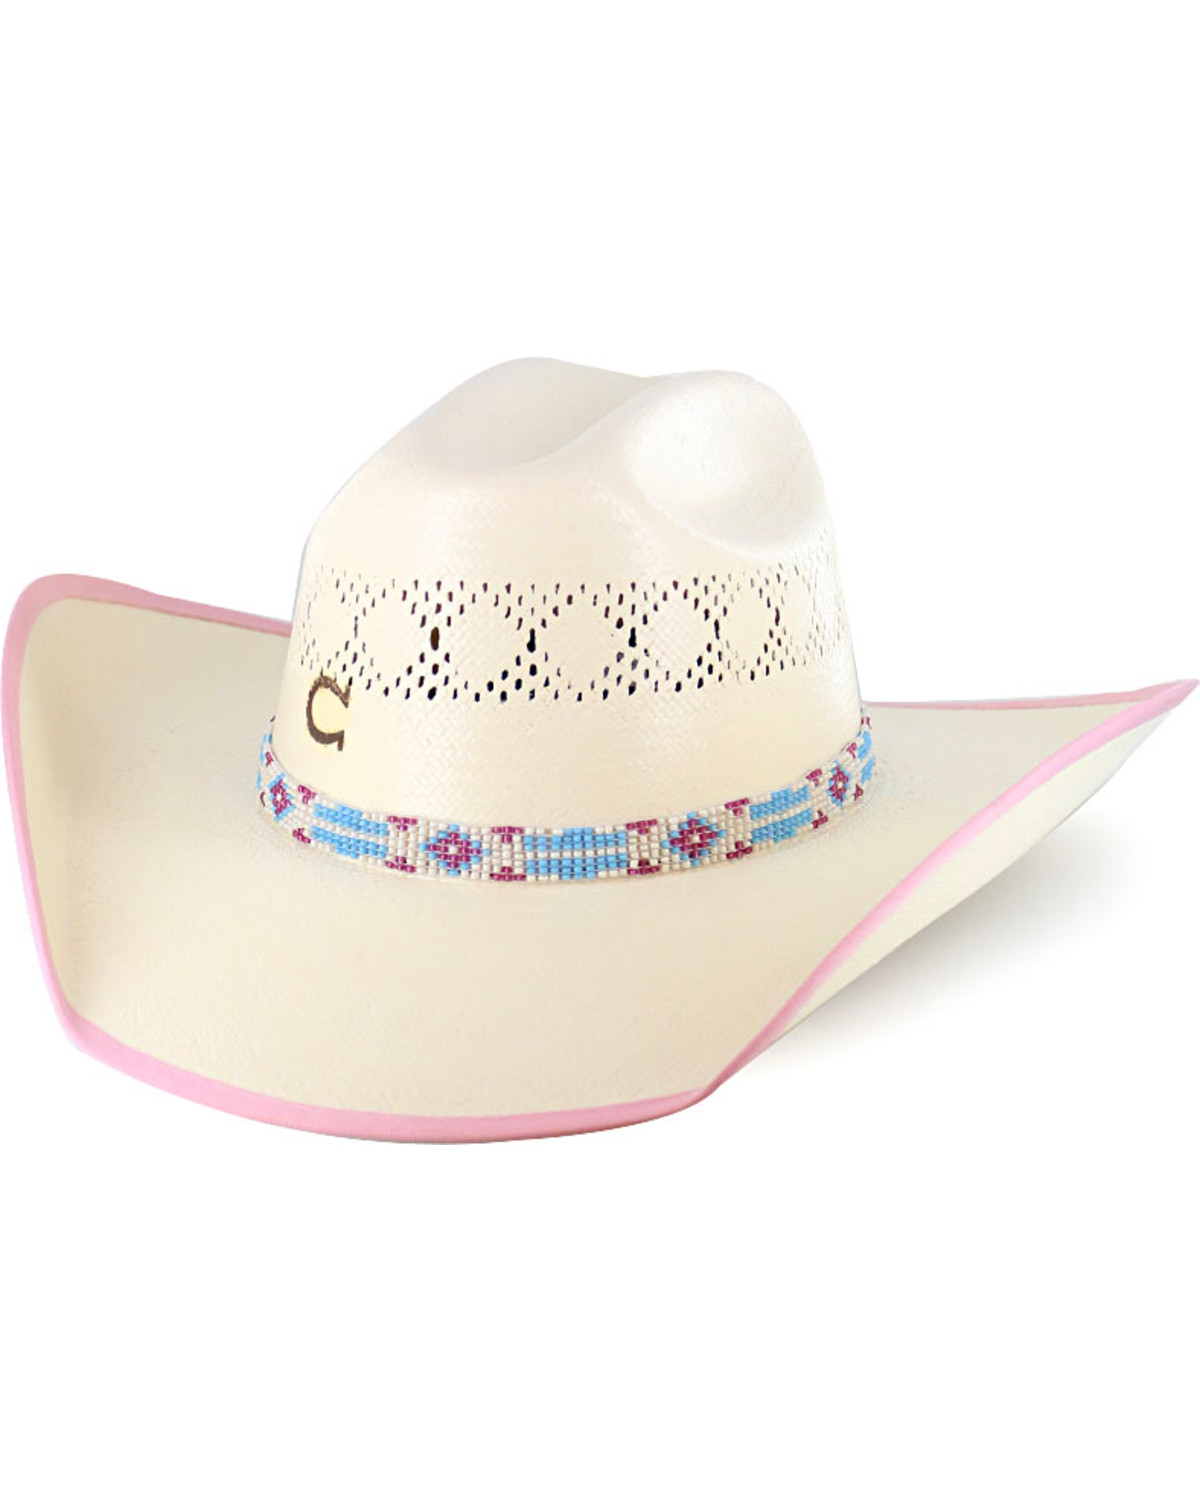 4fa4d873d Charlie 1 Horse Girls' Gracie Straw Hat